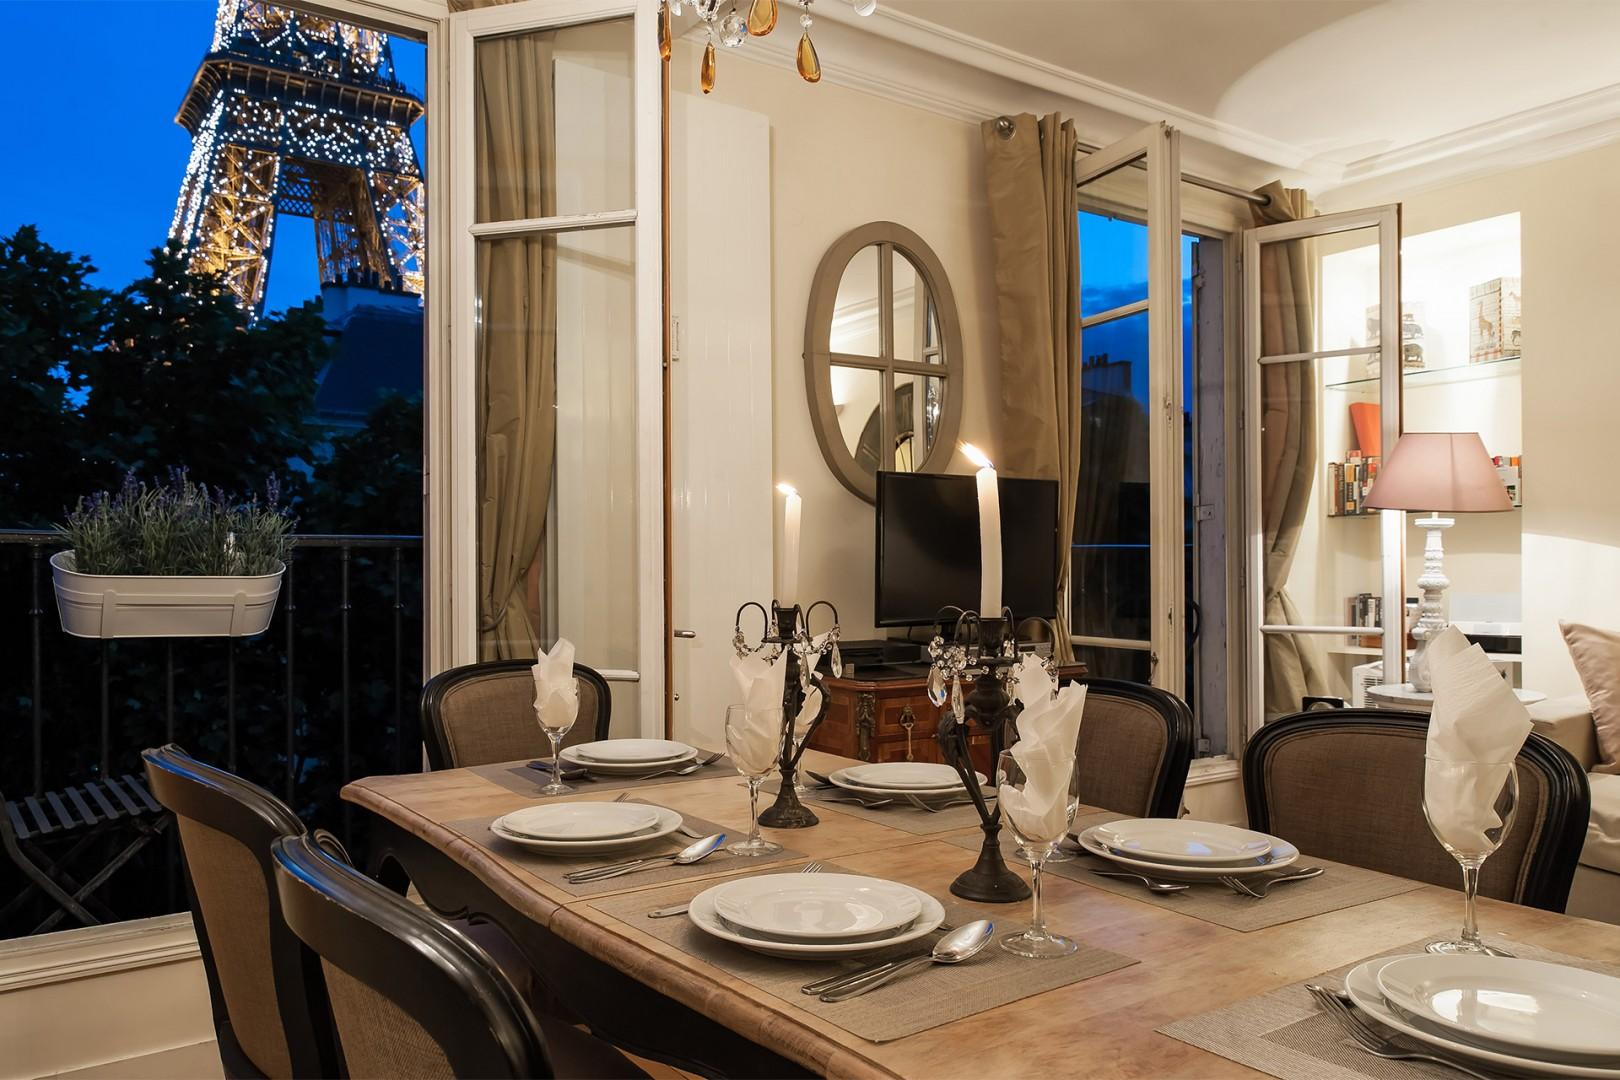 You can also enjoy dinner with a view every night!